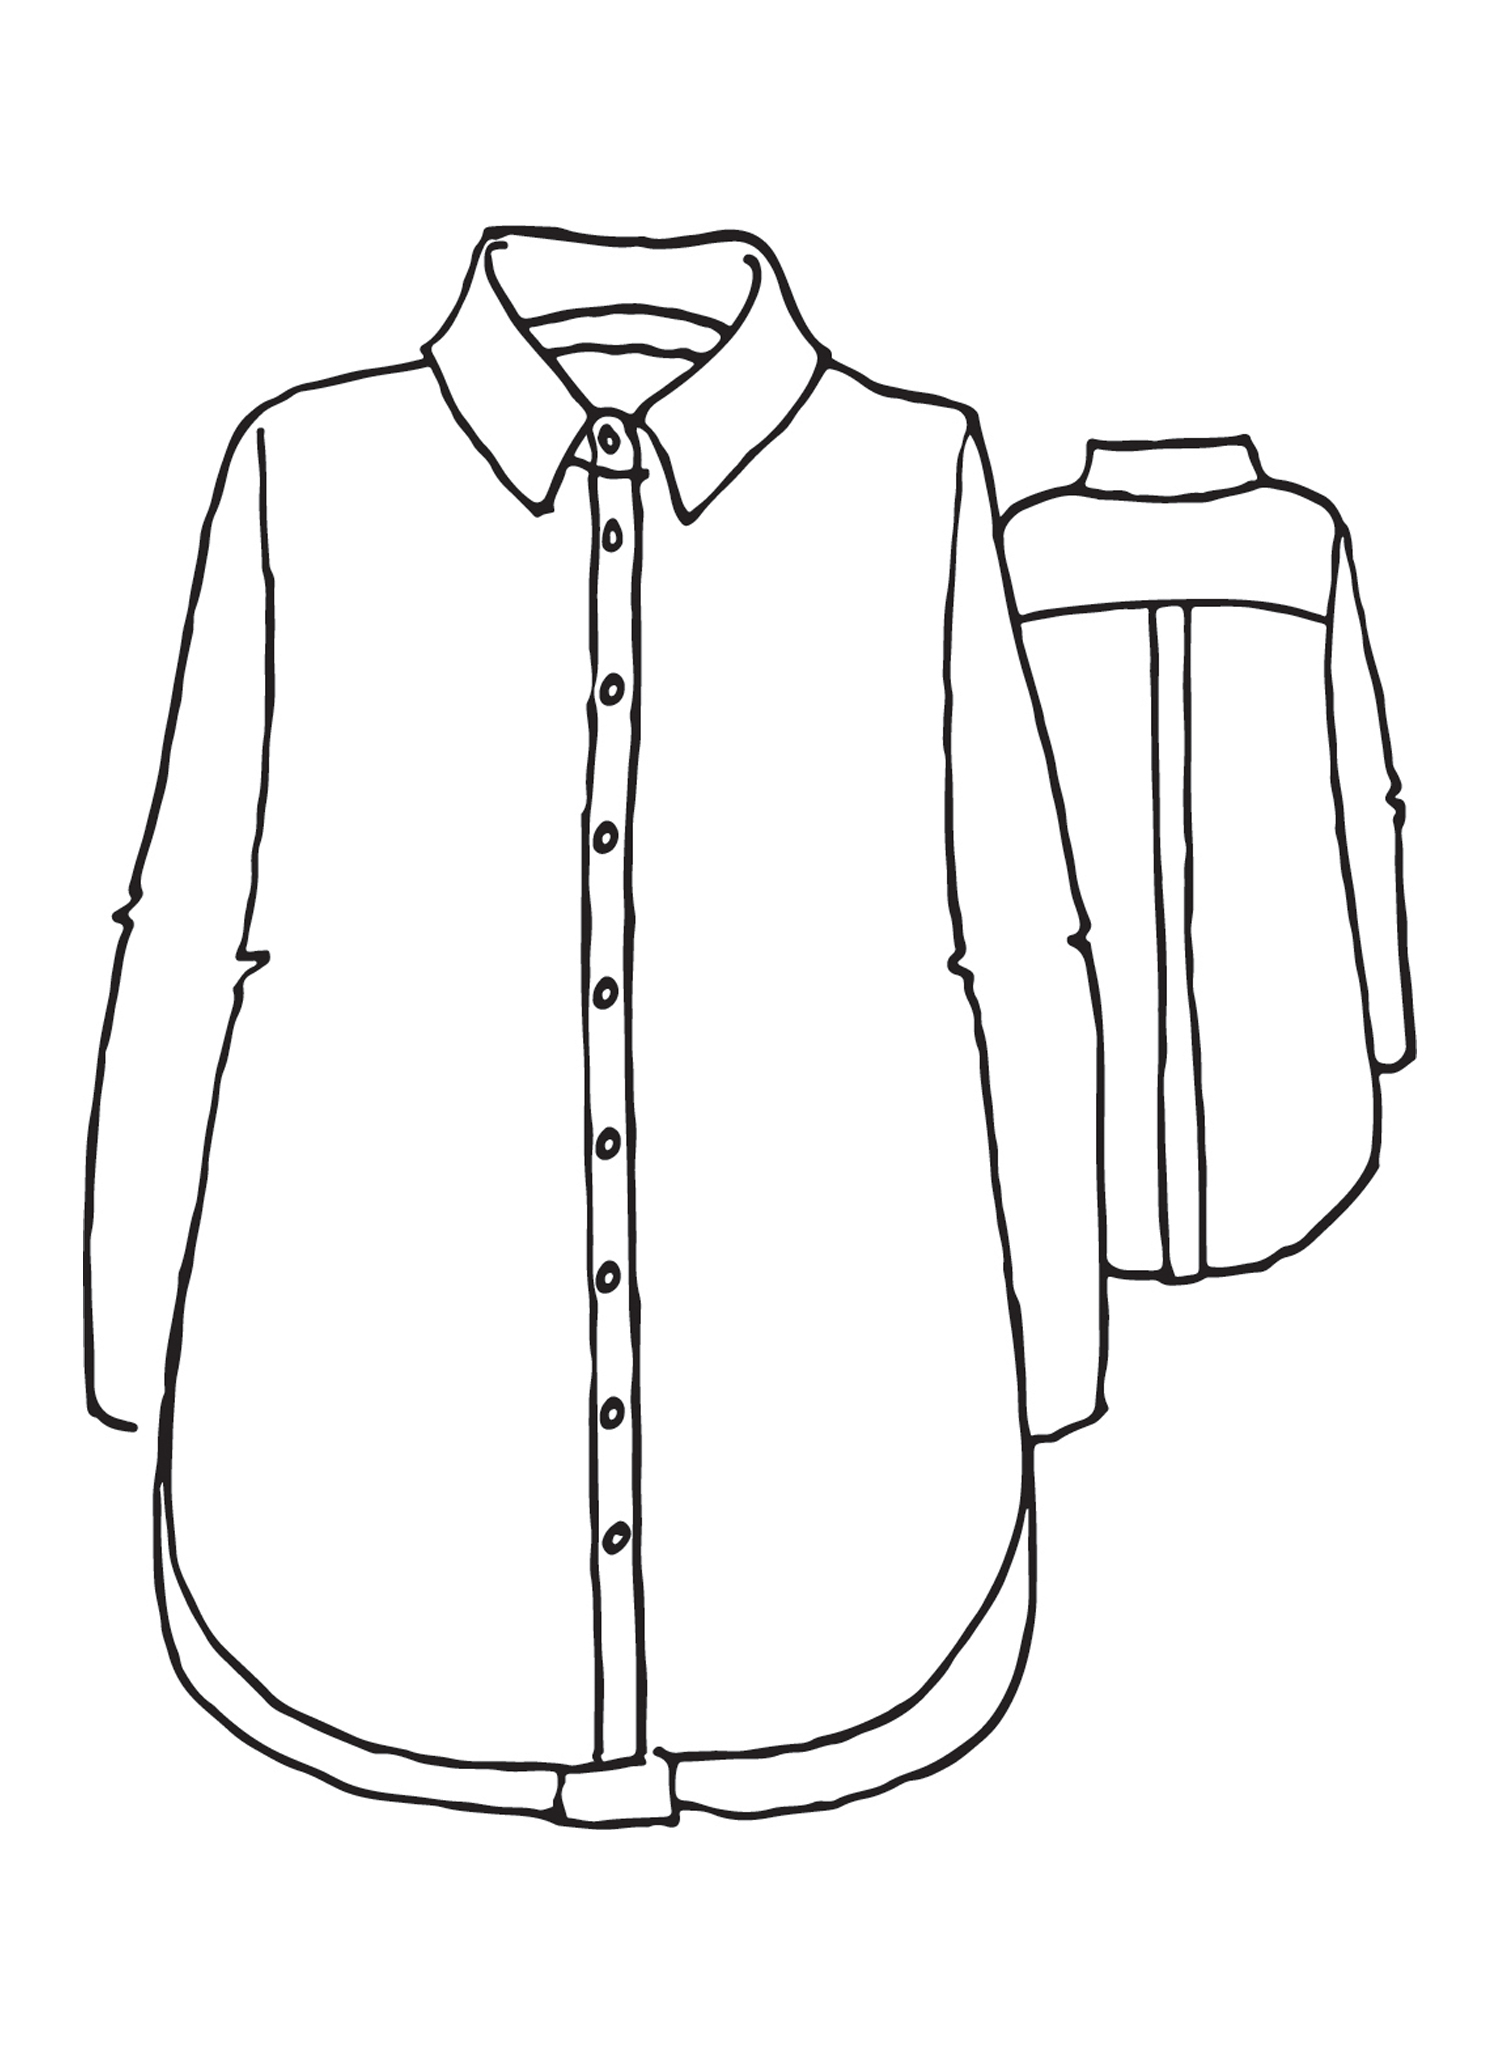 Crossroads Blouse sketch image